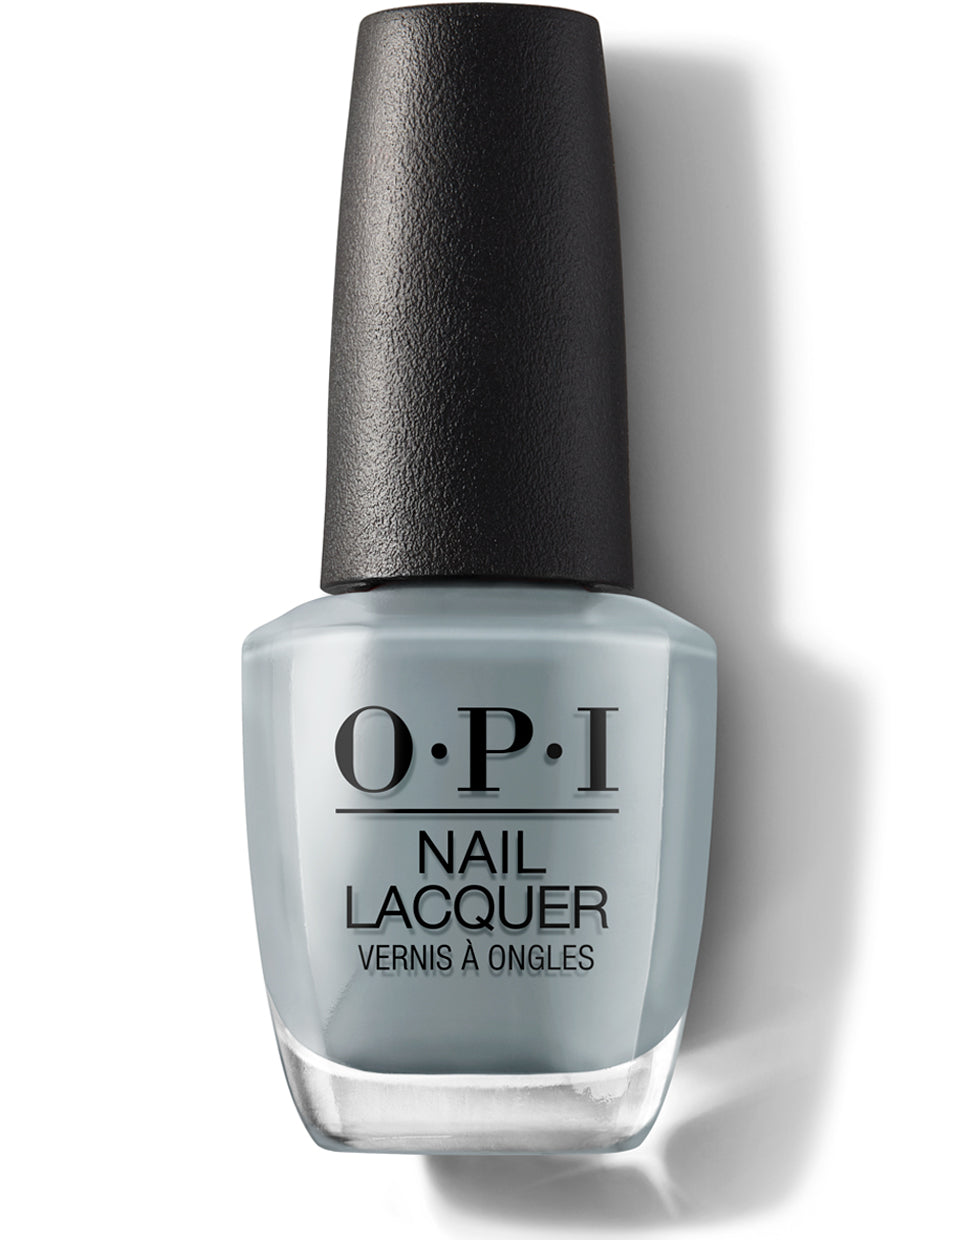 OPI Nail Lacquer Black Onyx (15ml)